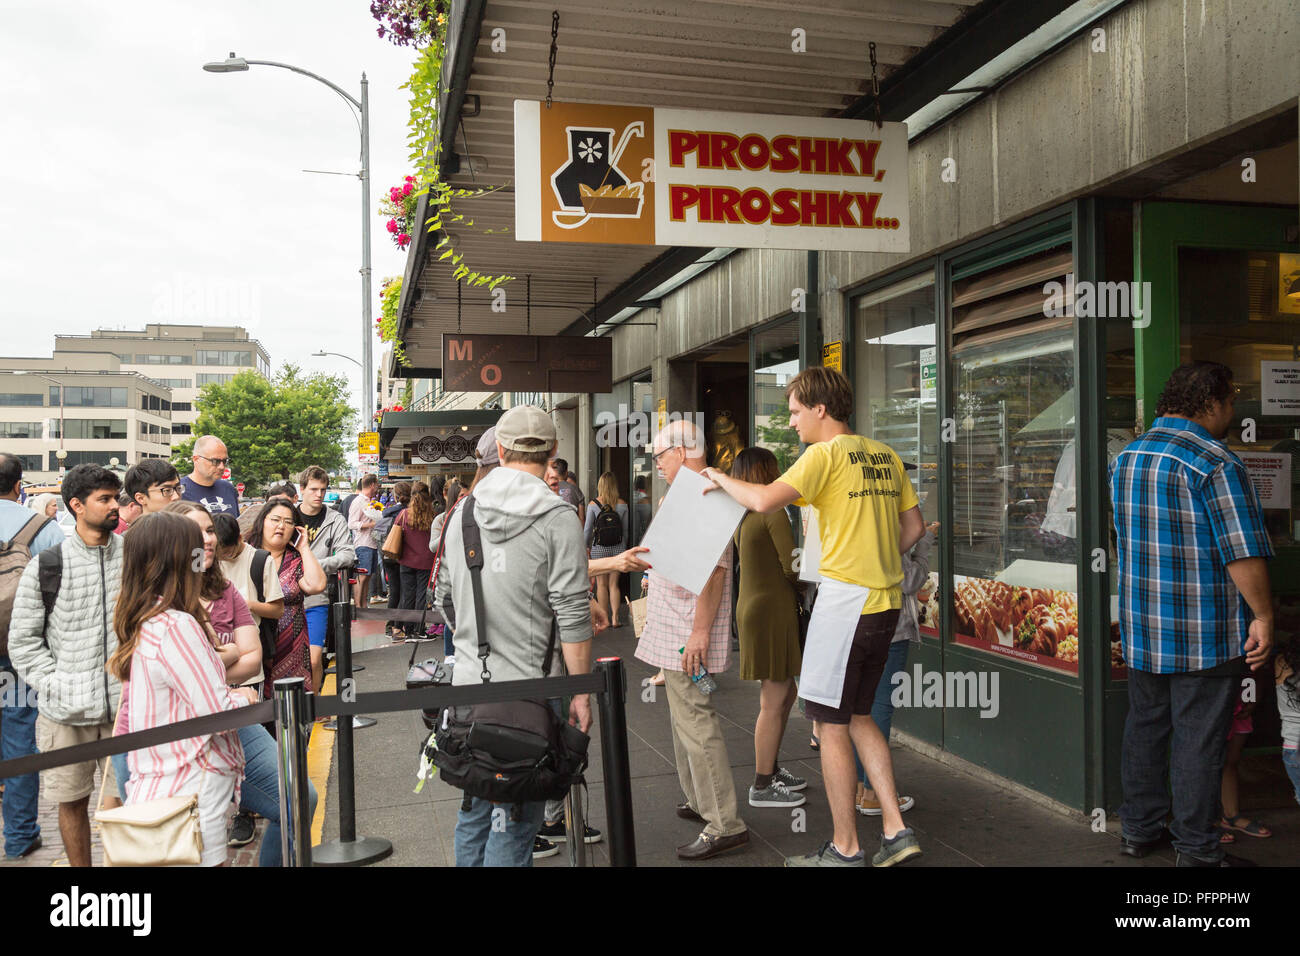 Visitors wait for their turns in line to taste piroshki in front of Piroshky Piroishky at Pike Place Market, Seattle, USA. - Stock Image